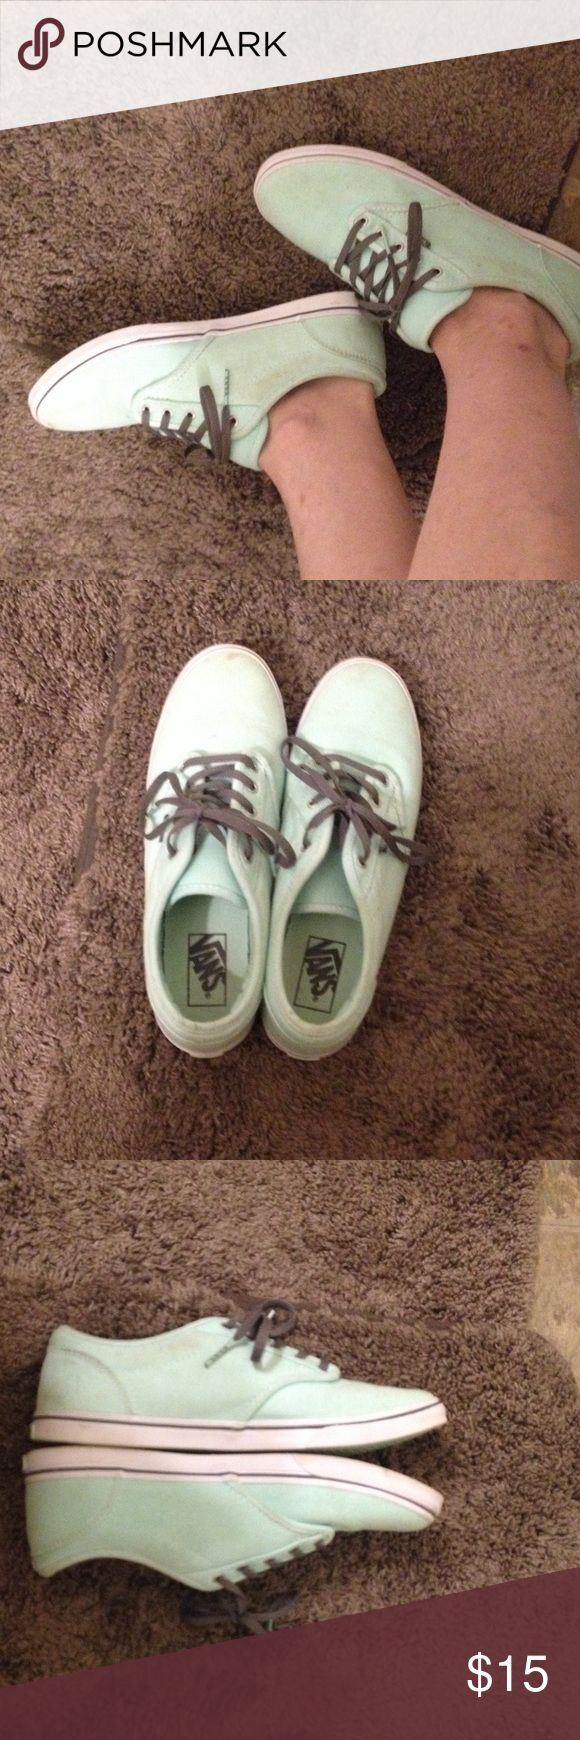 Teal vans Lightly worn teal vans with grey shoes strings. A couple stains on top but hardly noticeable. Vans Shoes Sneakers